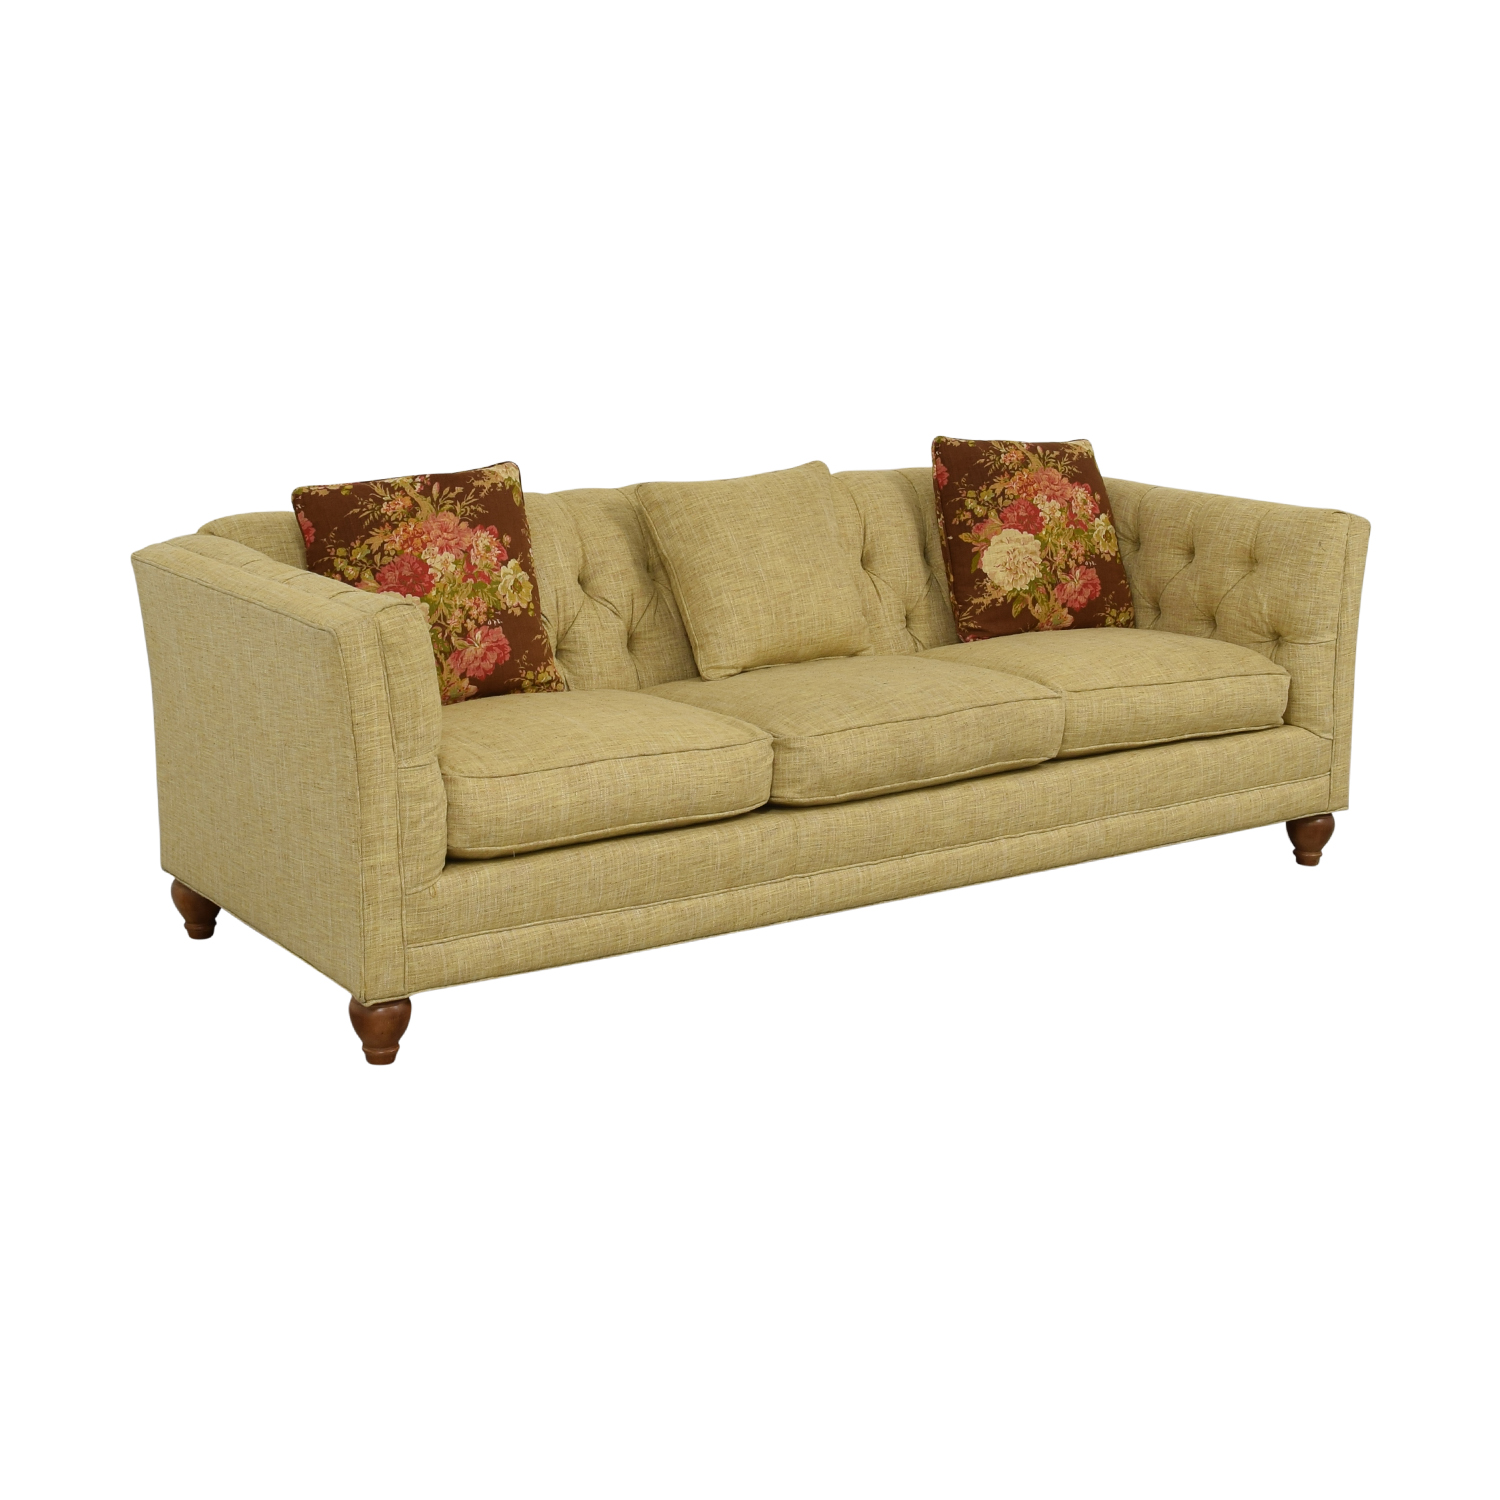 Sofa On Online Country Willow Tan Three Cushion Sofa